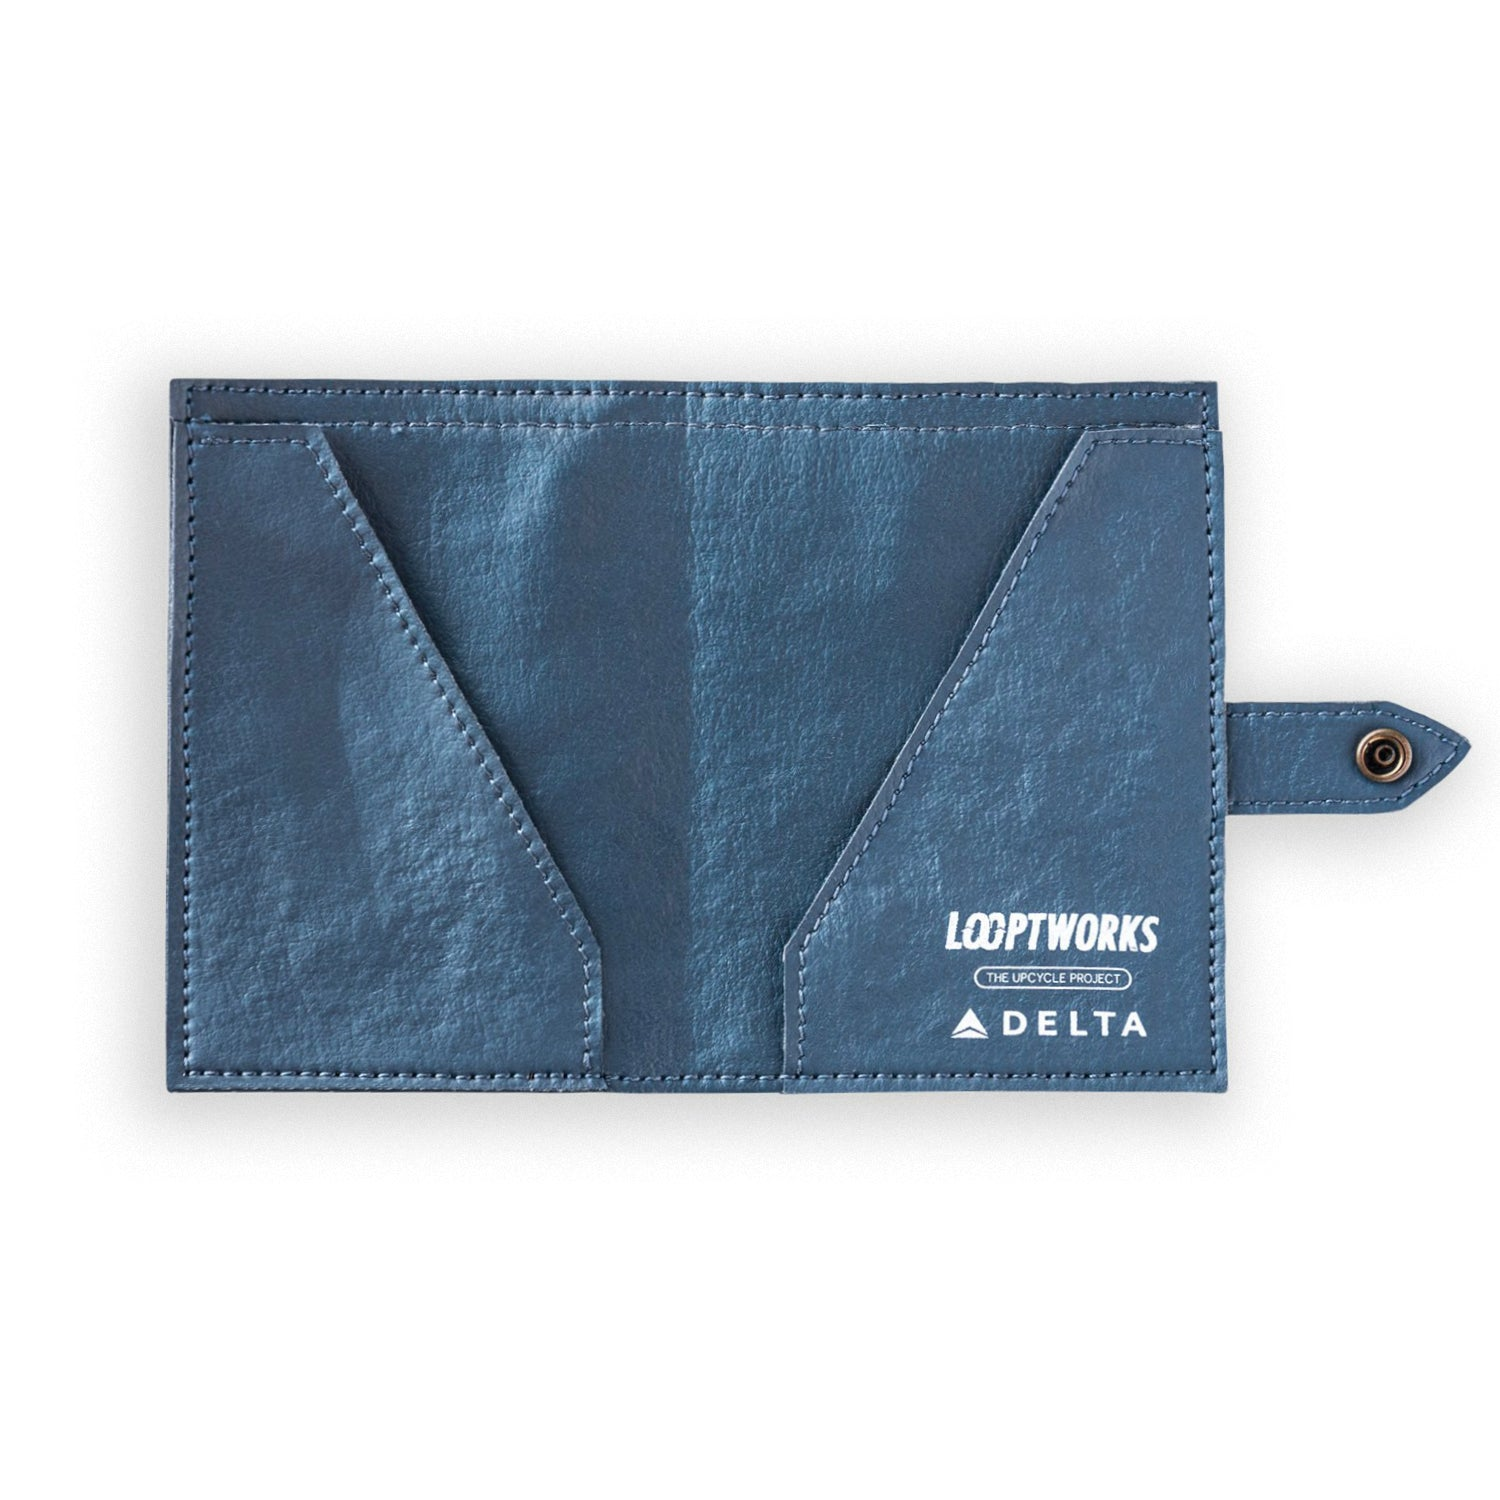 Delta Passport Wallet Accessories - Looptworks